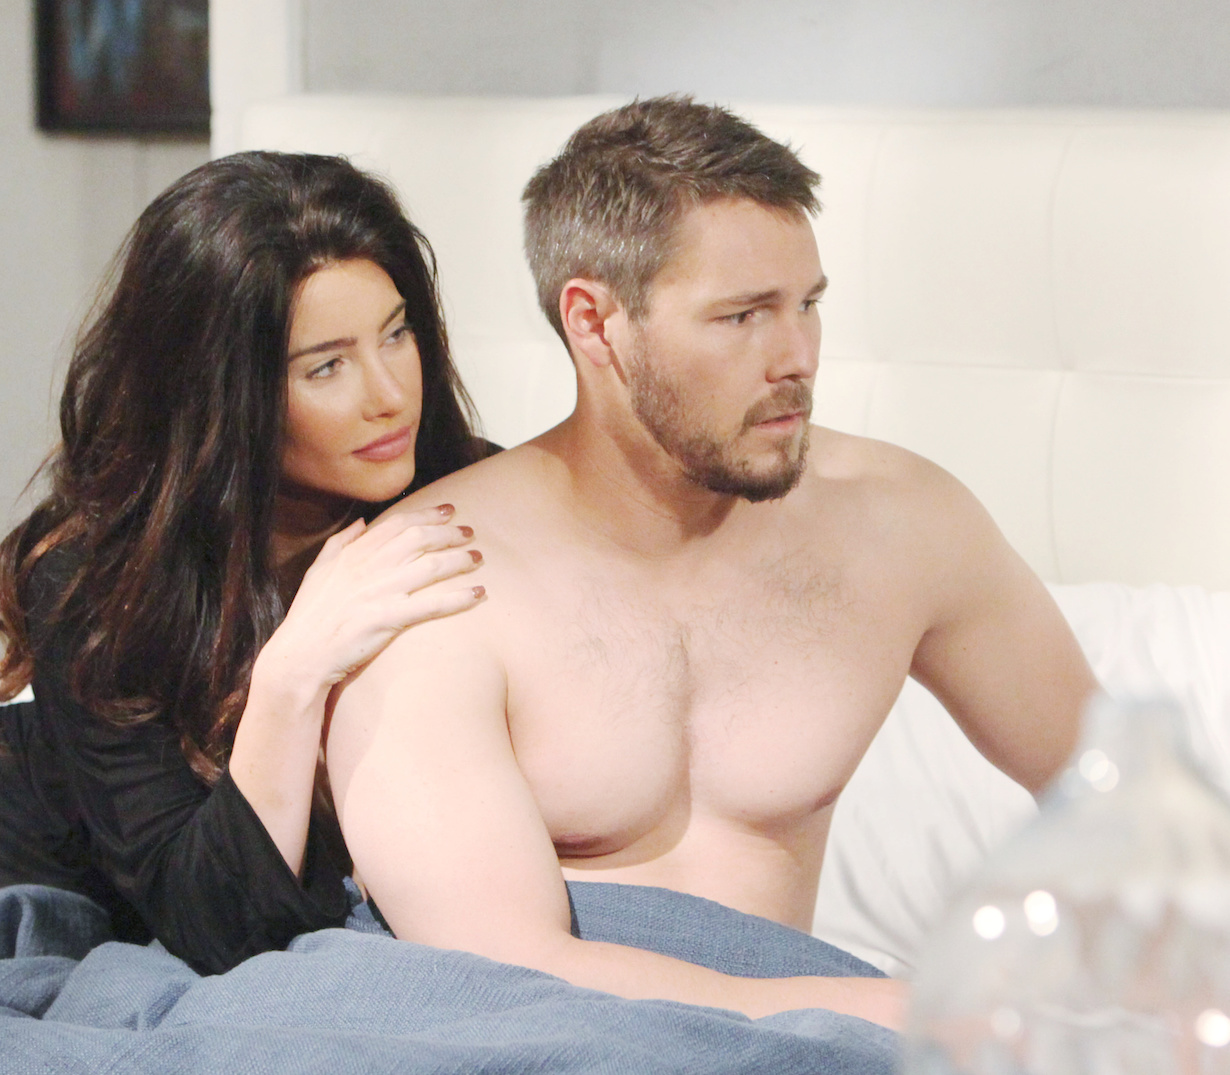 "Scott Clifton, Jacqueline MacInnes Wood""The Bold and the Beautiful"" SetCBS Television CityLos Angeles, Ca.05/30/19© Howard Wise/jpistudios.com310-657-9661Episode # 8124U.S.Airdate 07/2/19"